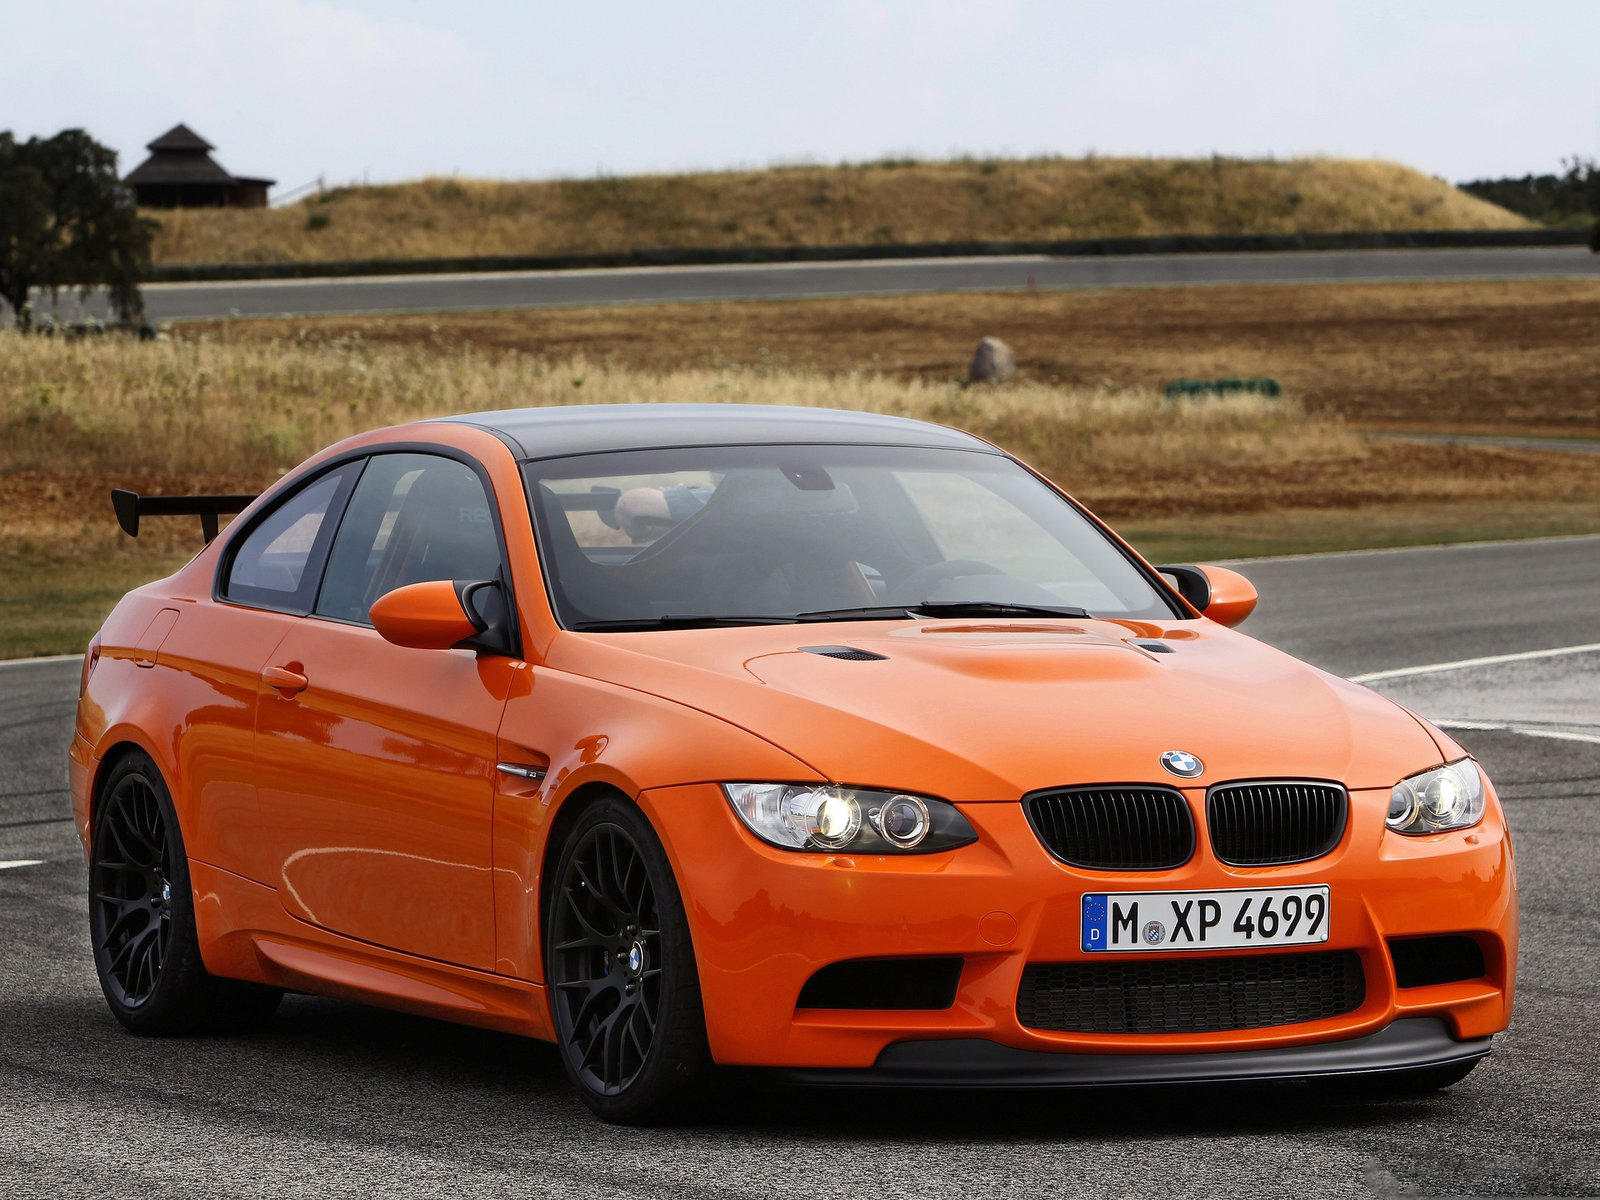 2011 bmw m3 gts front view